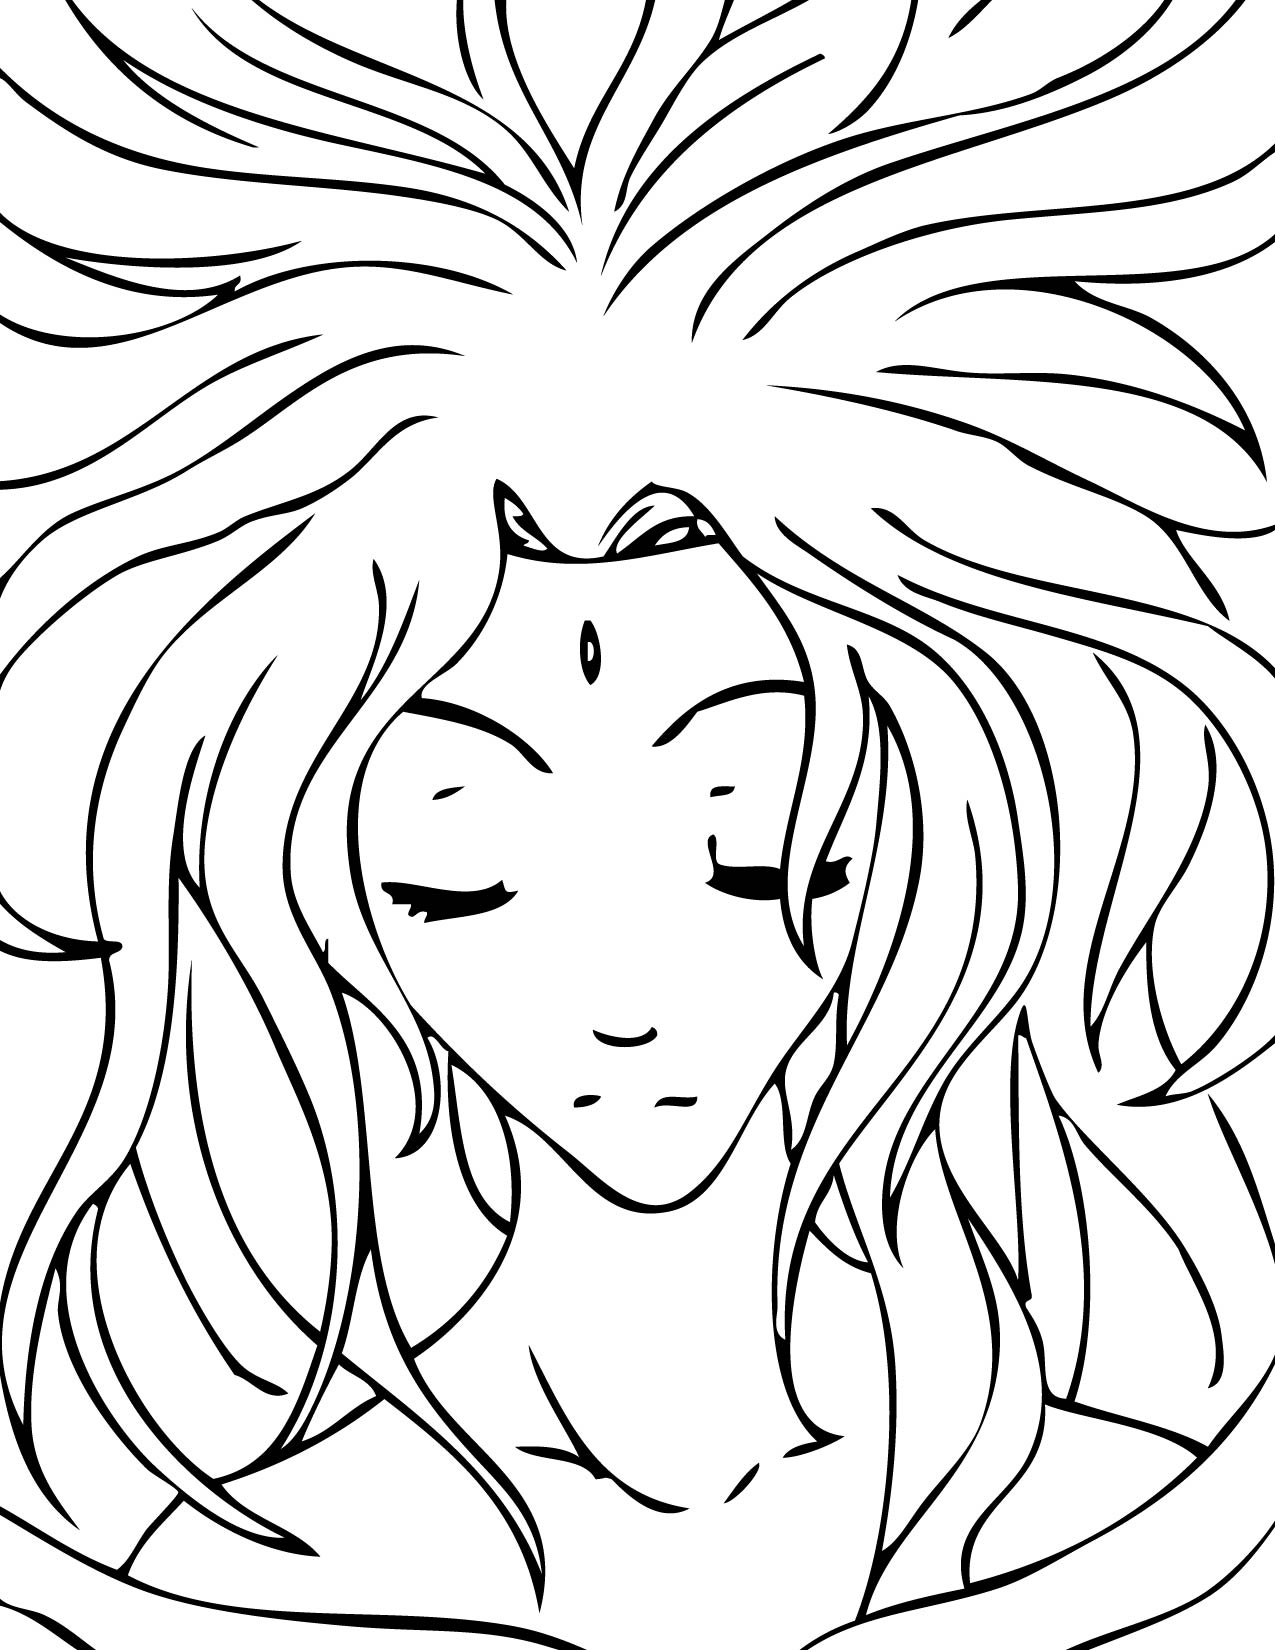 Coloring pages greek mythology - Aphrodite